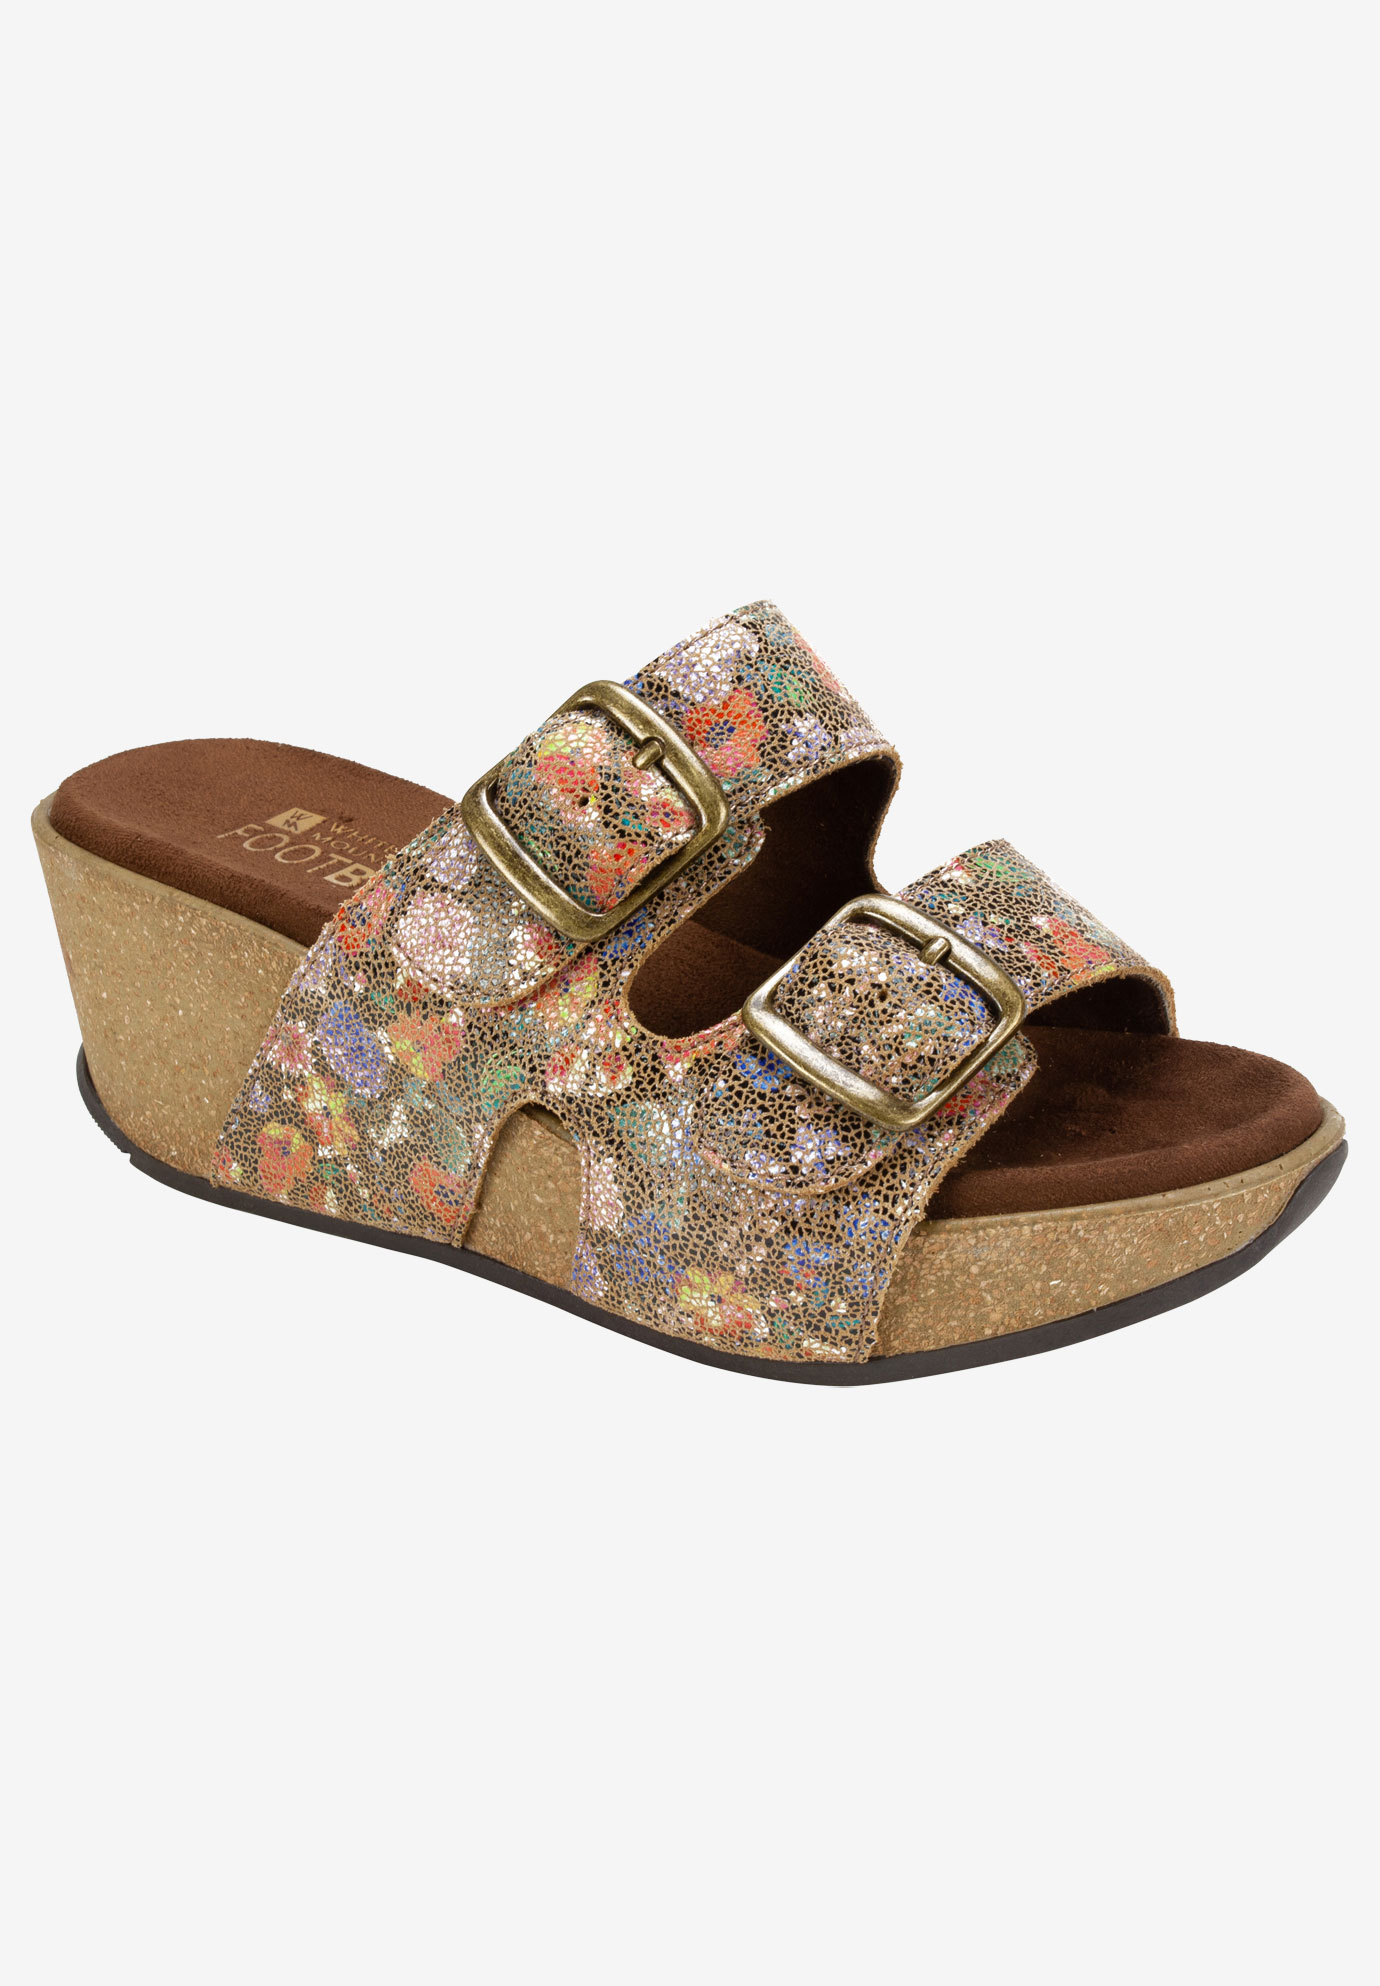 Chandler Sandal by White Mountain,